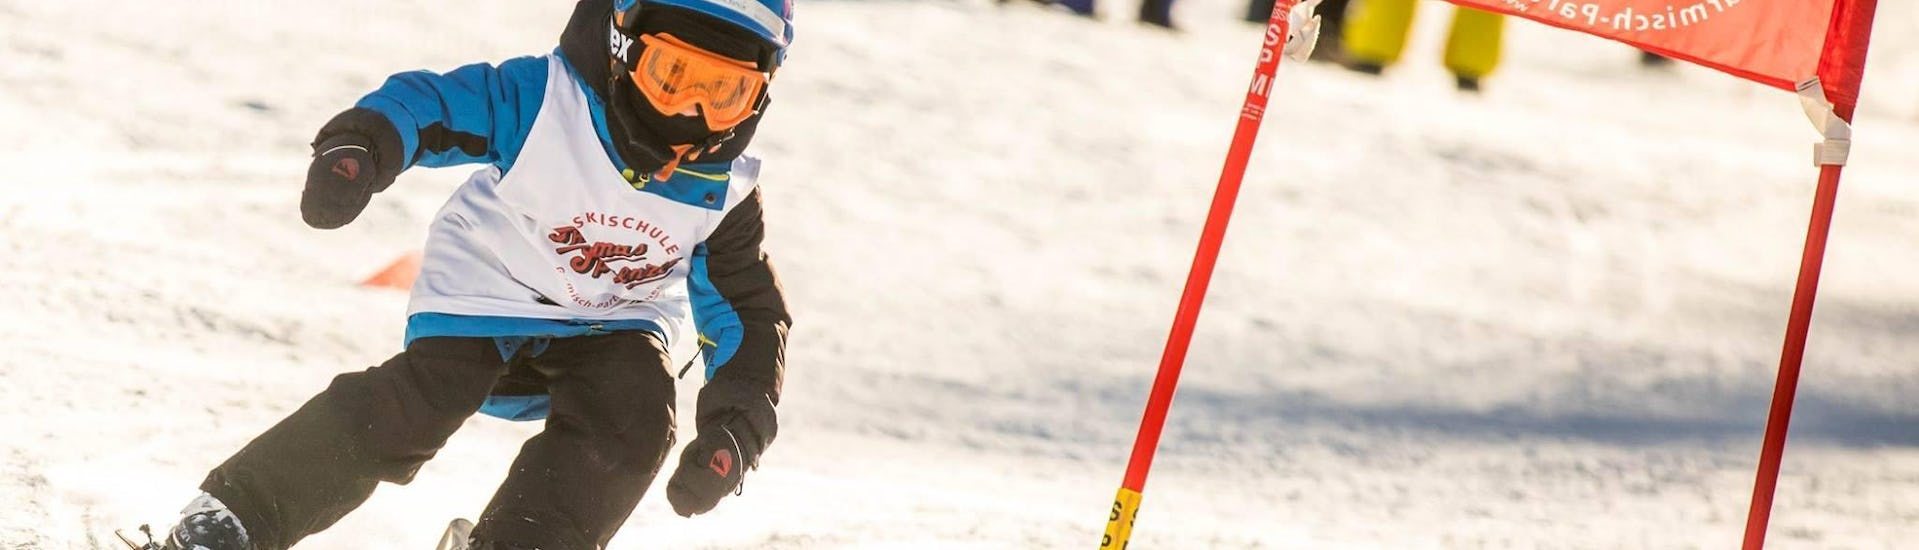 A young child is racing down a race course as part of its Kids Ski Lessons (4-12 years) - All Levels with the ski school Skischule Thomas Sprenzel in the ski resort of Garmisch-Classic.